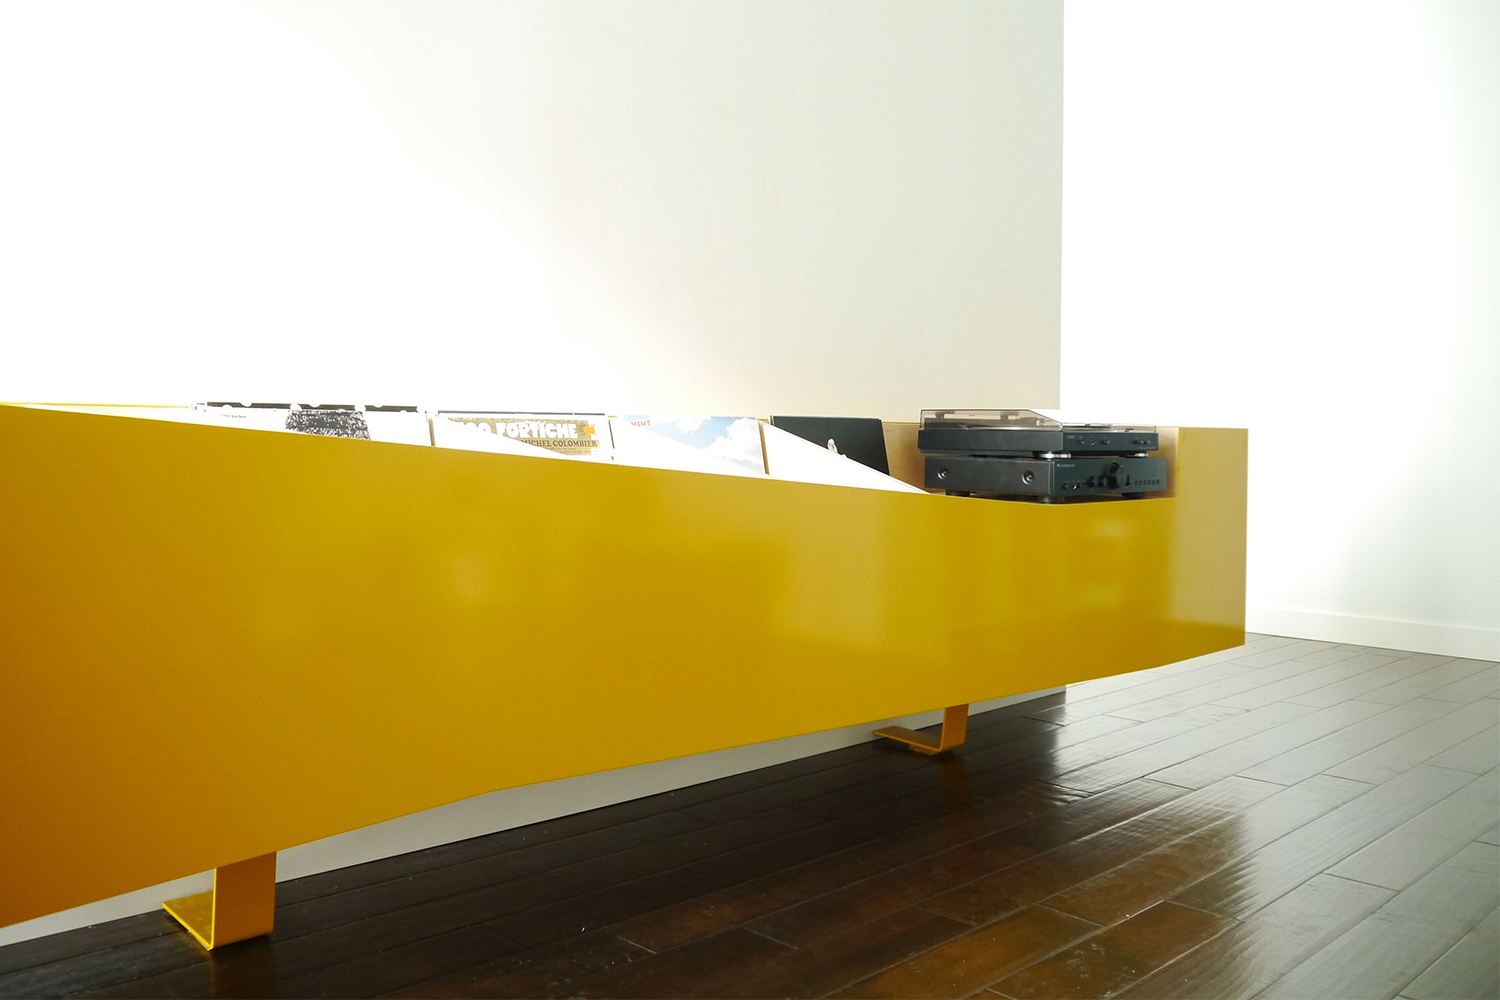 View at the height of the custom audio cabinet for storage of vinyl records.